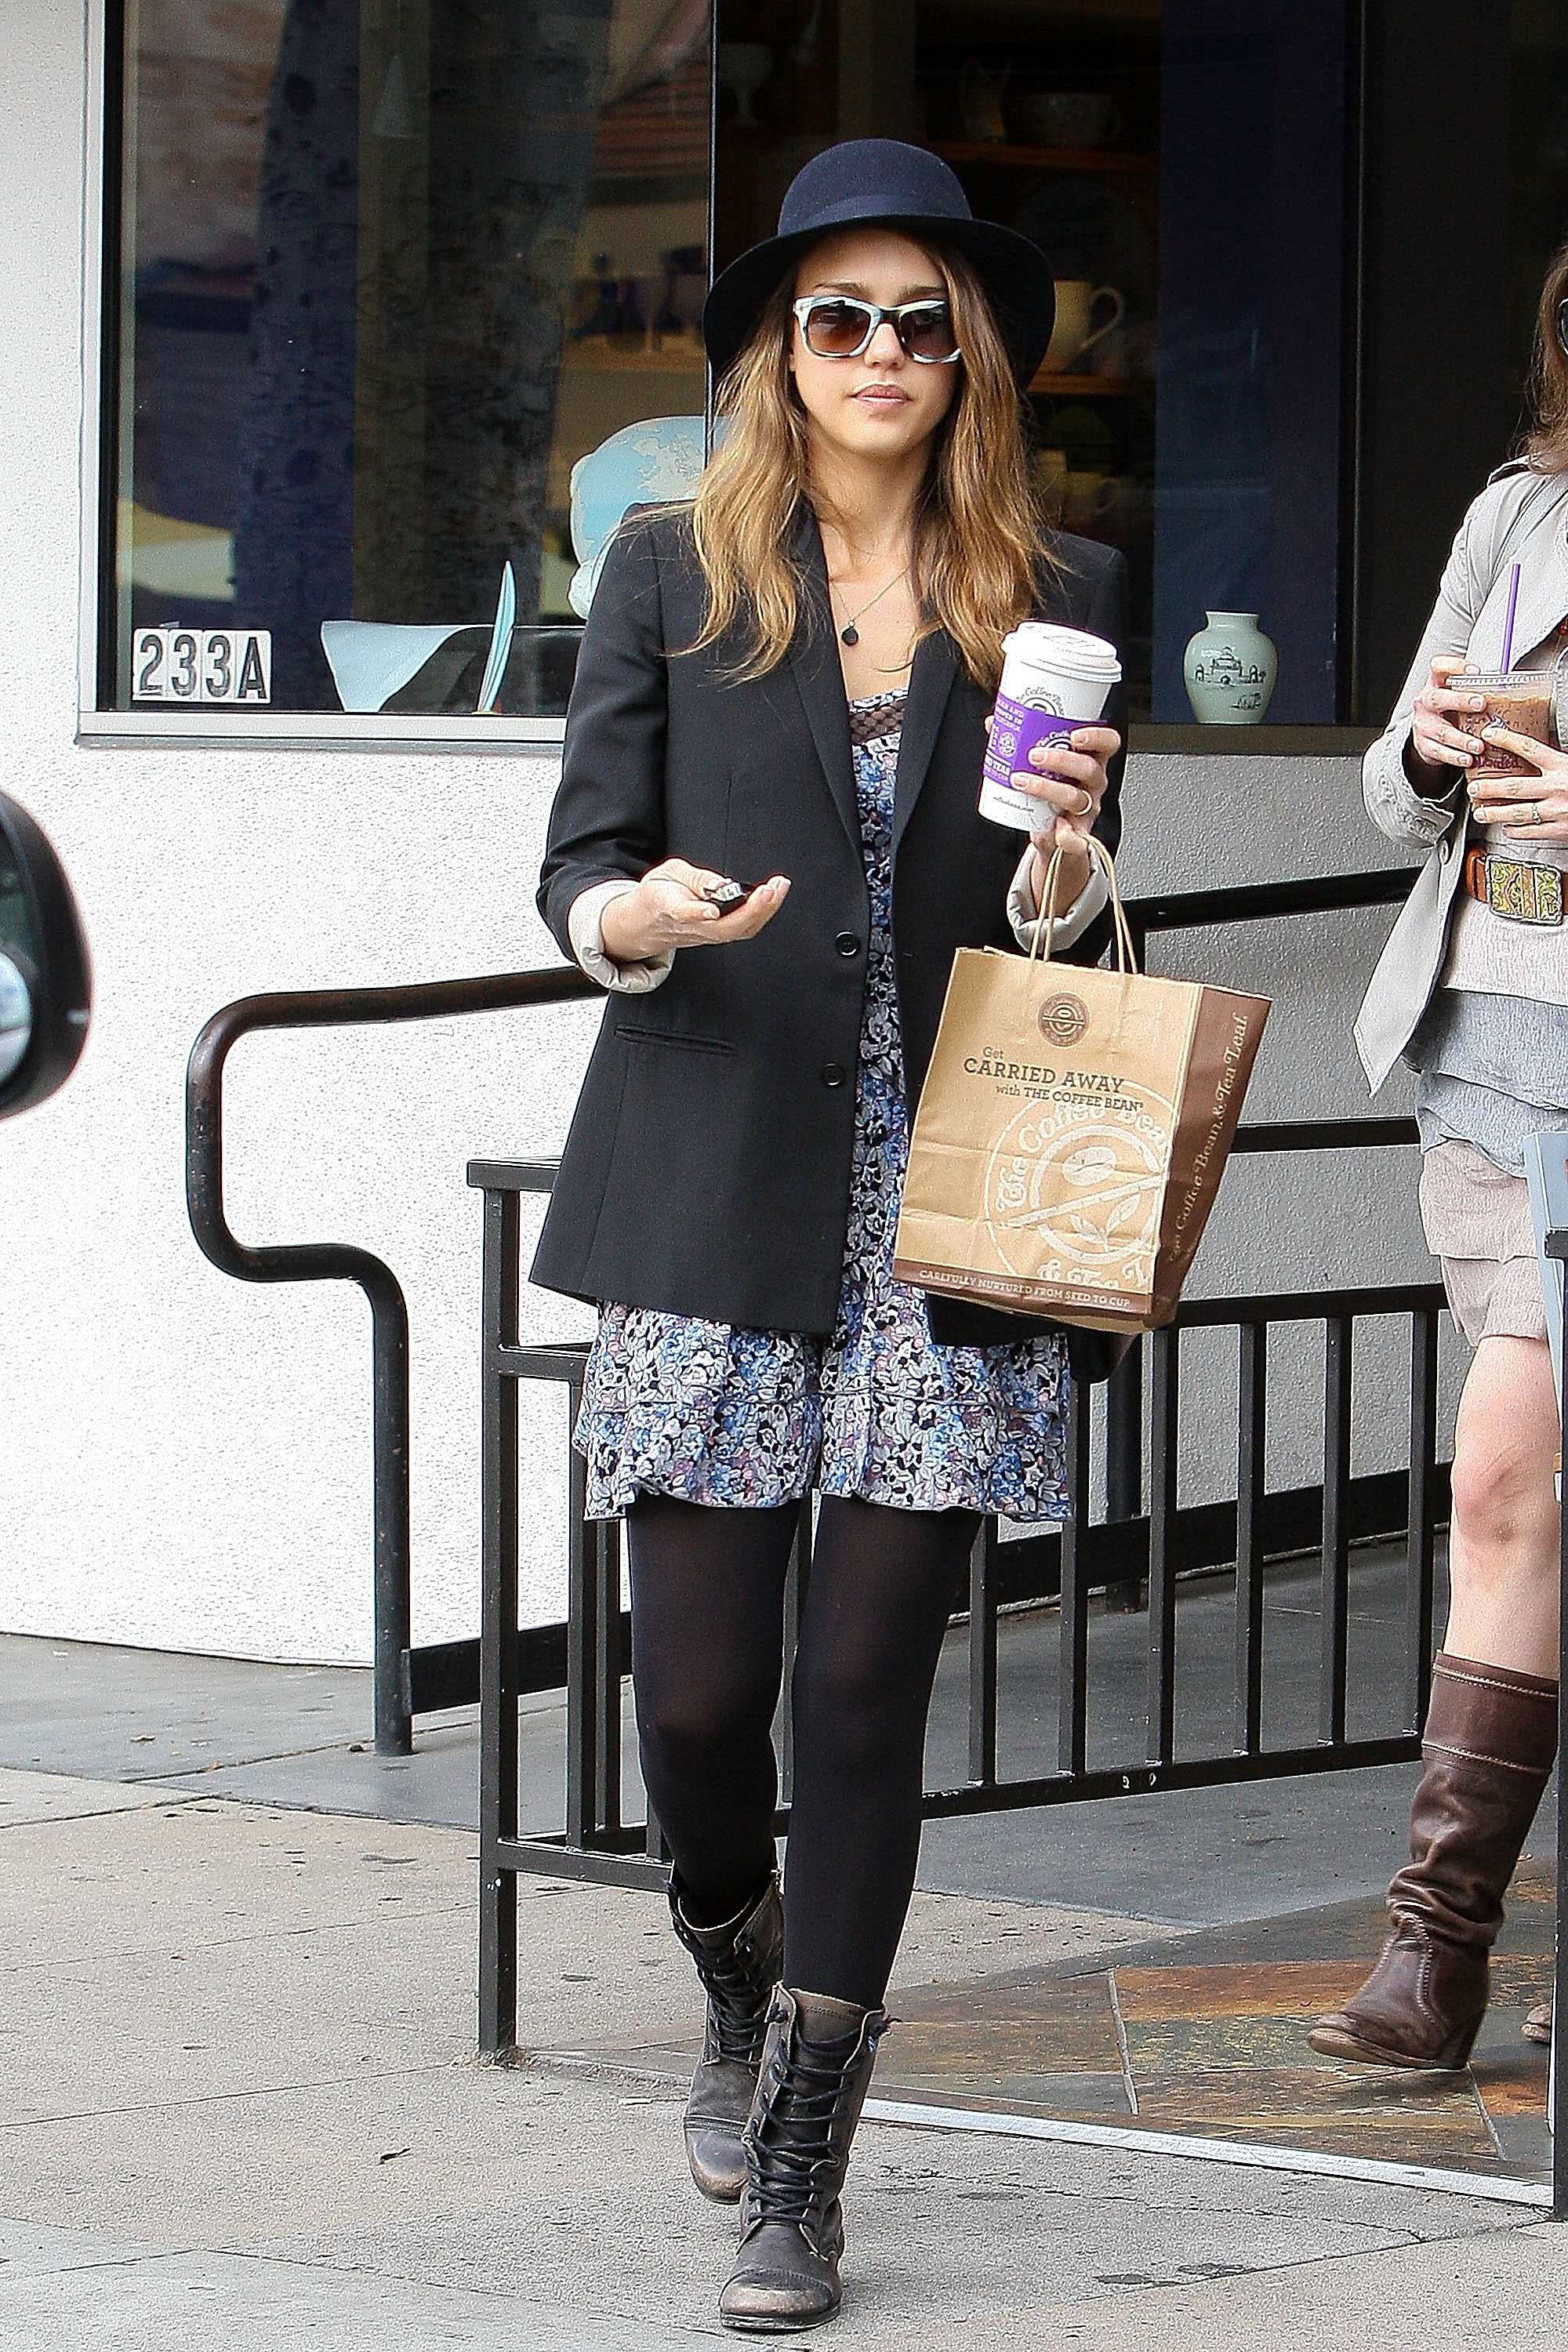 Printed Dress Black Blazer Hat Boots Combat Boots Moto Boots Jessica Alba Style Closetful Of